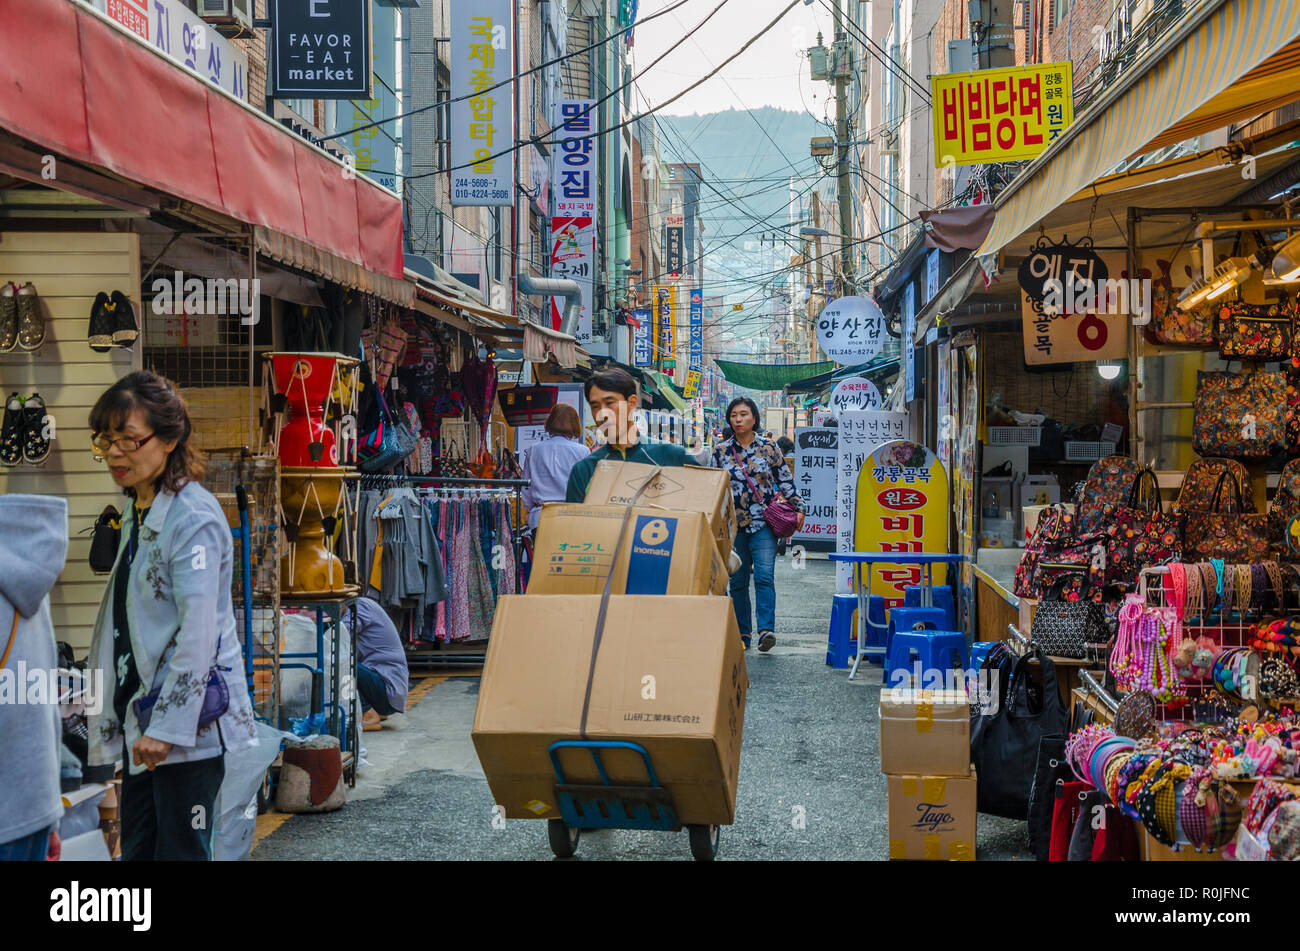 busy-street-market-scene-in-busan-south-korea-street-is-full-f-people-shopping-as-a-man-pushes-a-trolley-loaded-with-cardboard-boxes-R0JFNC.jpg